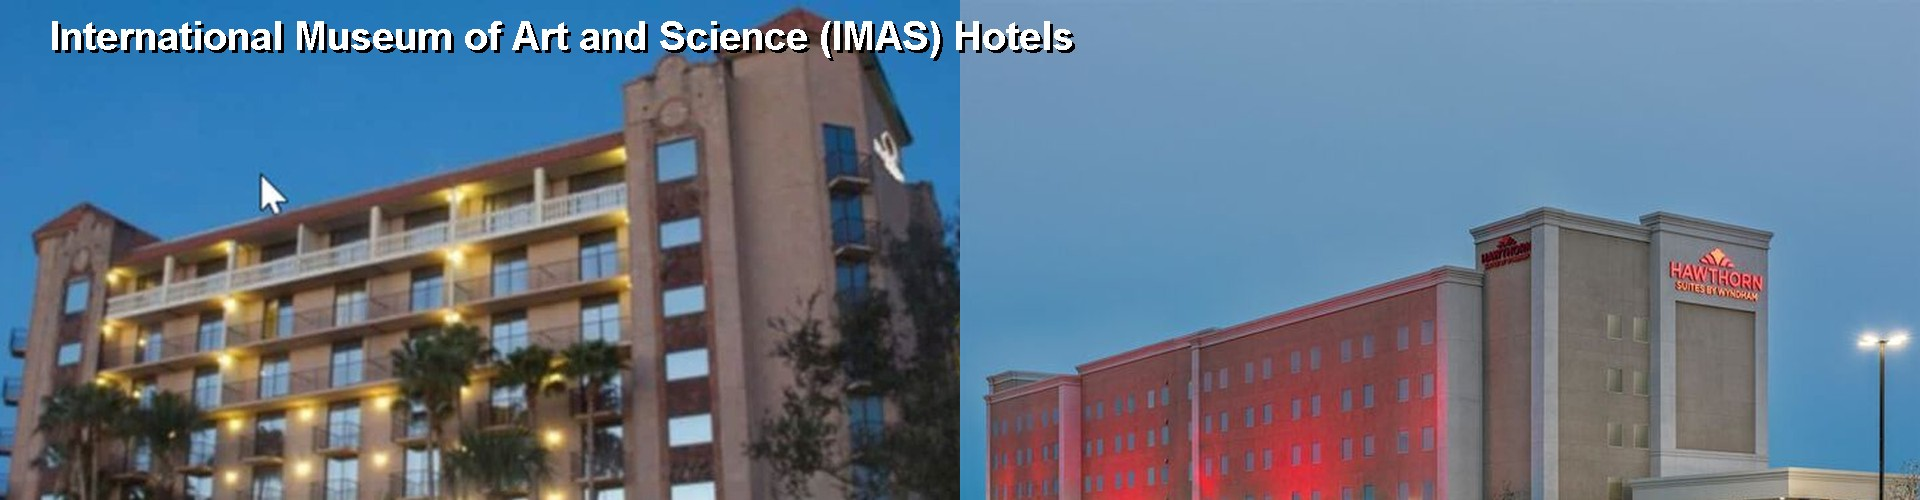 5 Best Hotels near International Museum of Art and Science (IMAS)